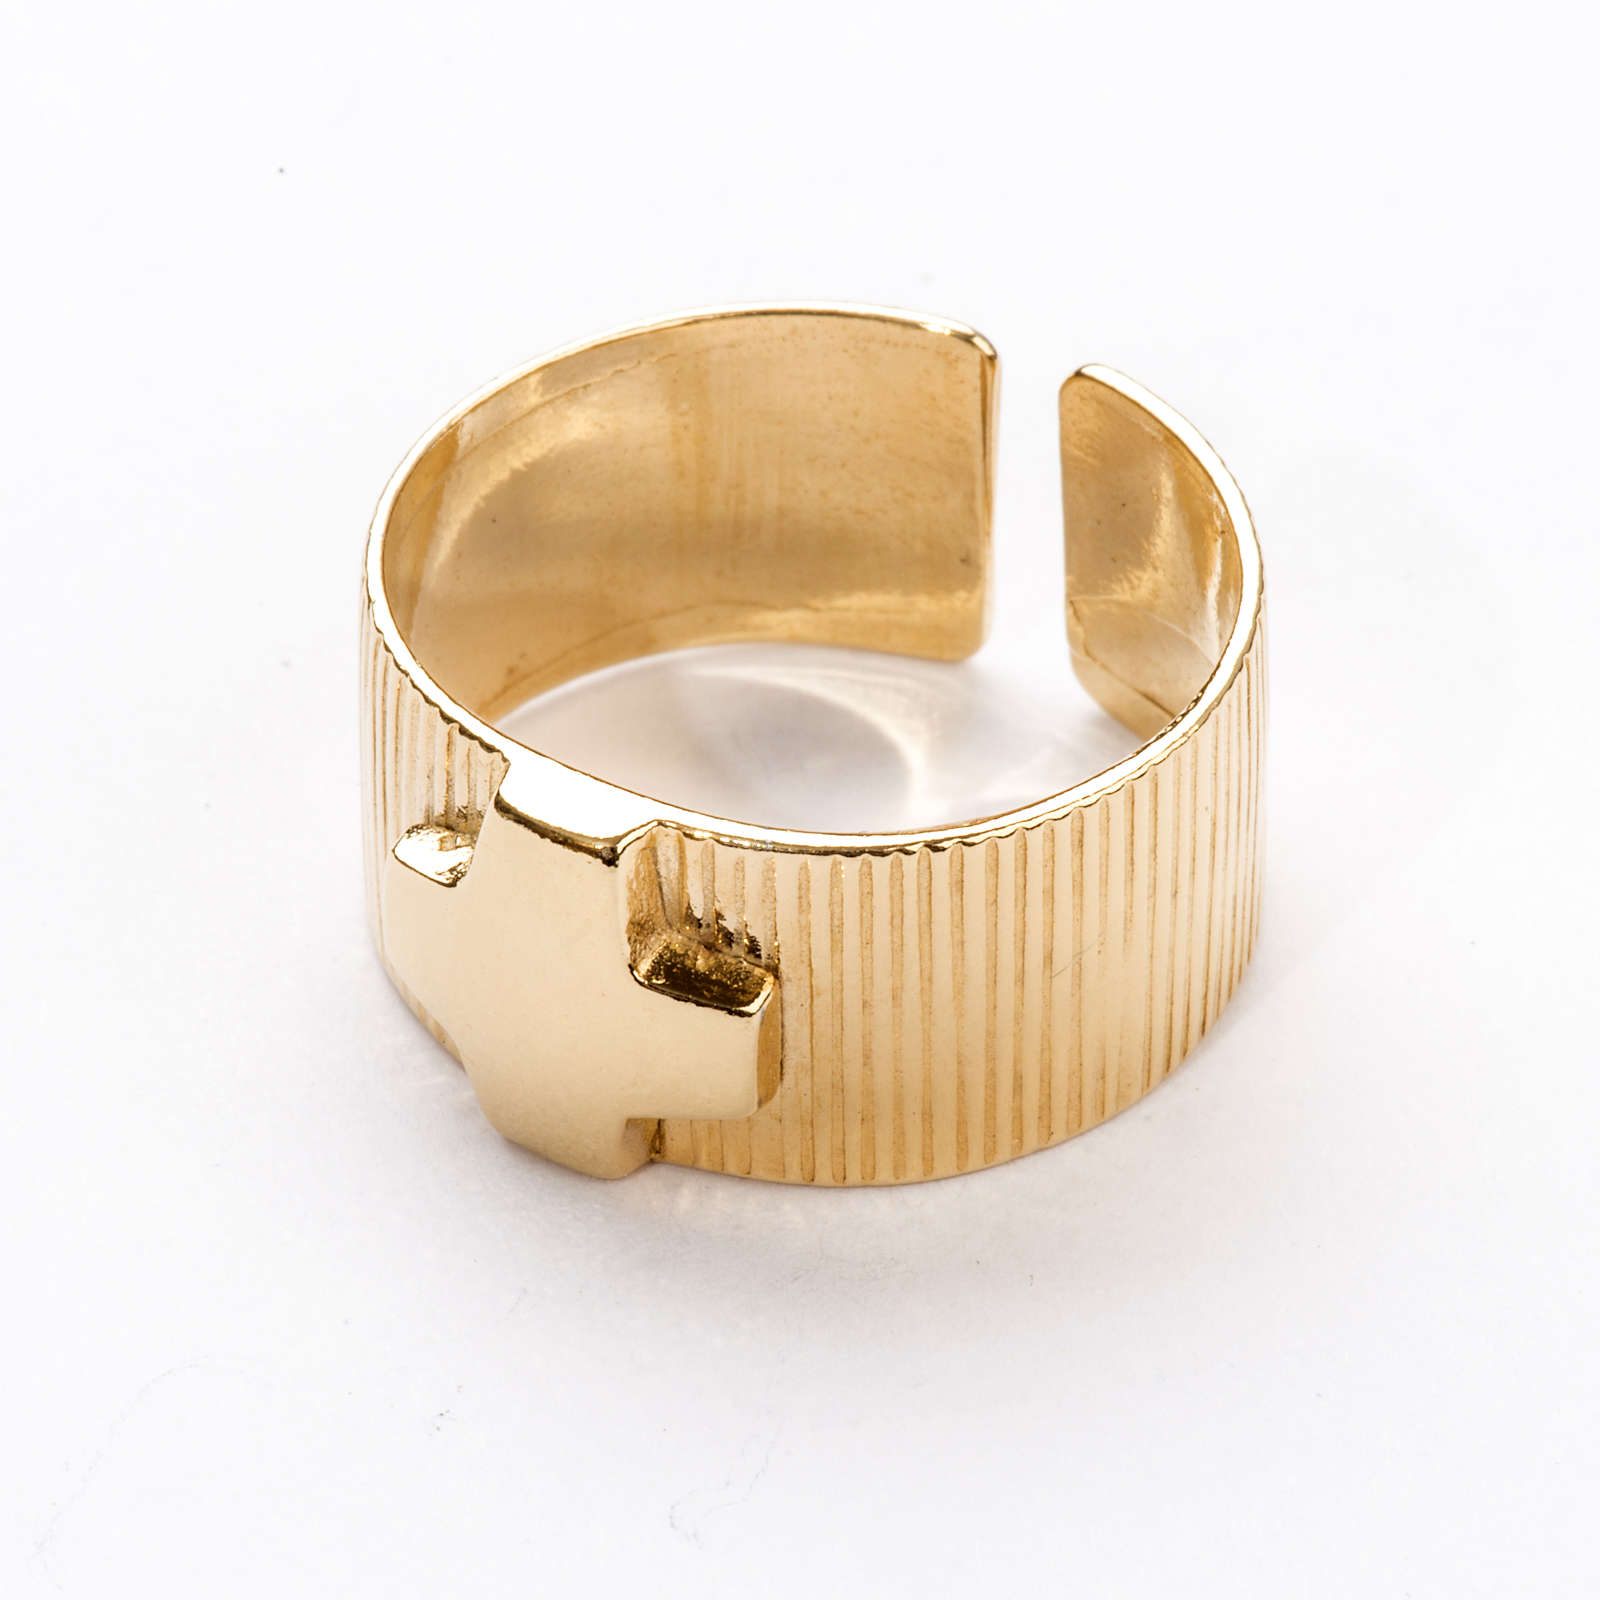 Ecclesiastical Ring in gold plated silver 925, cross decoration 3